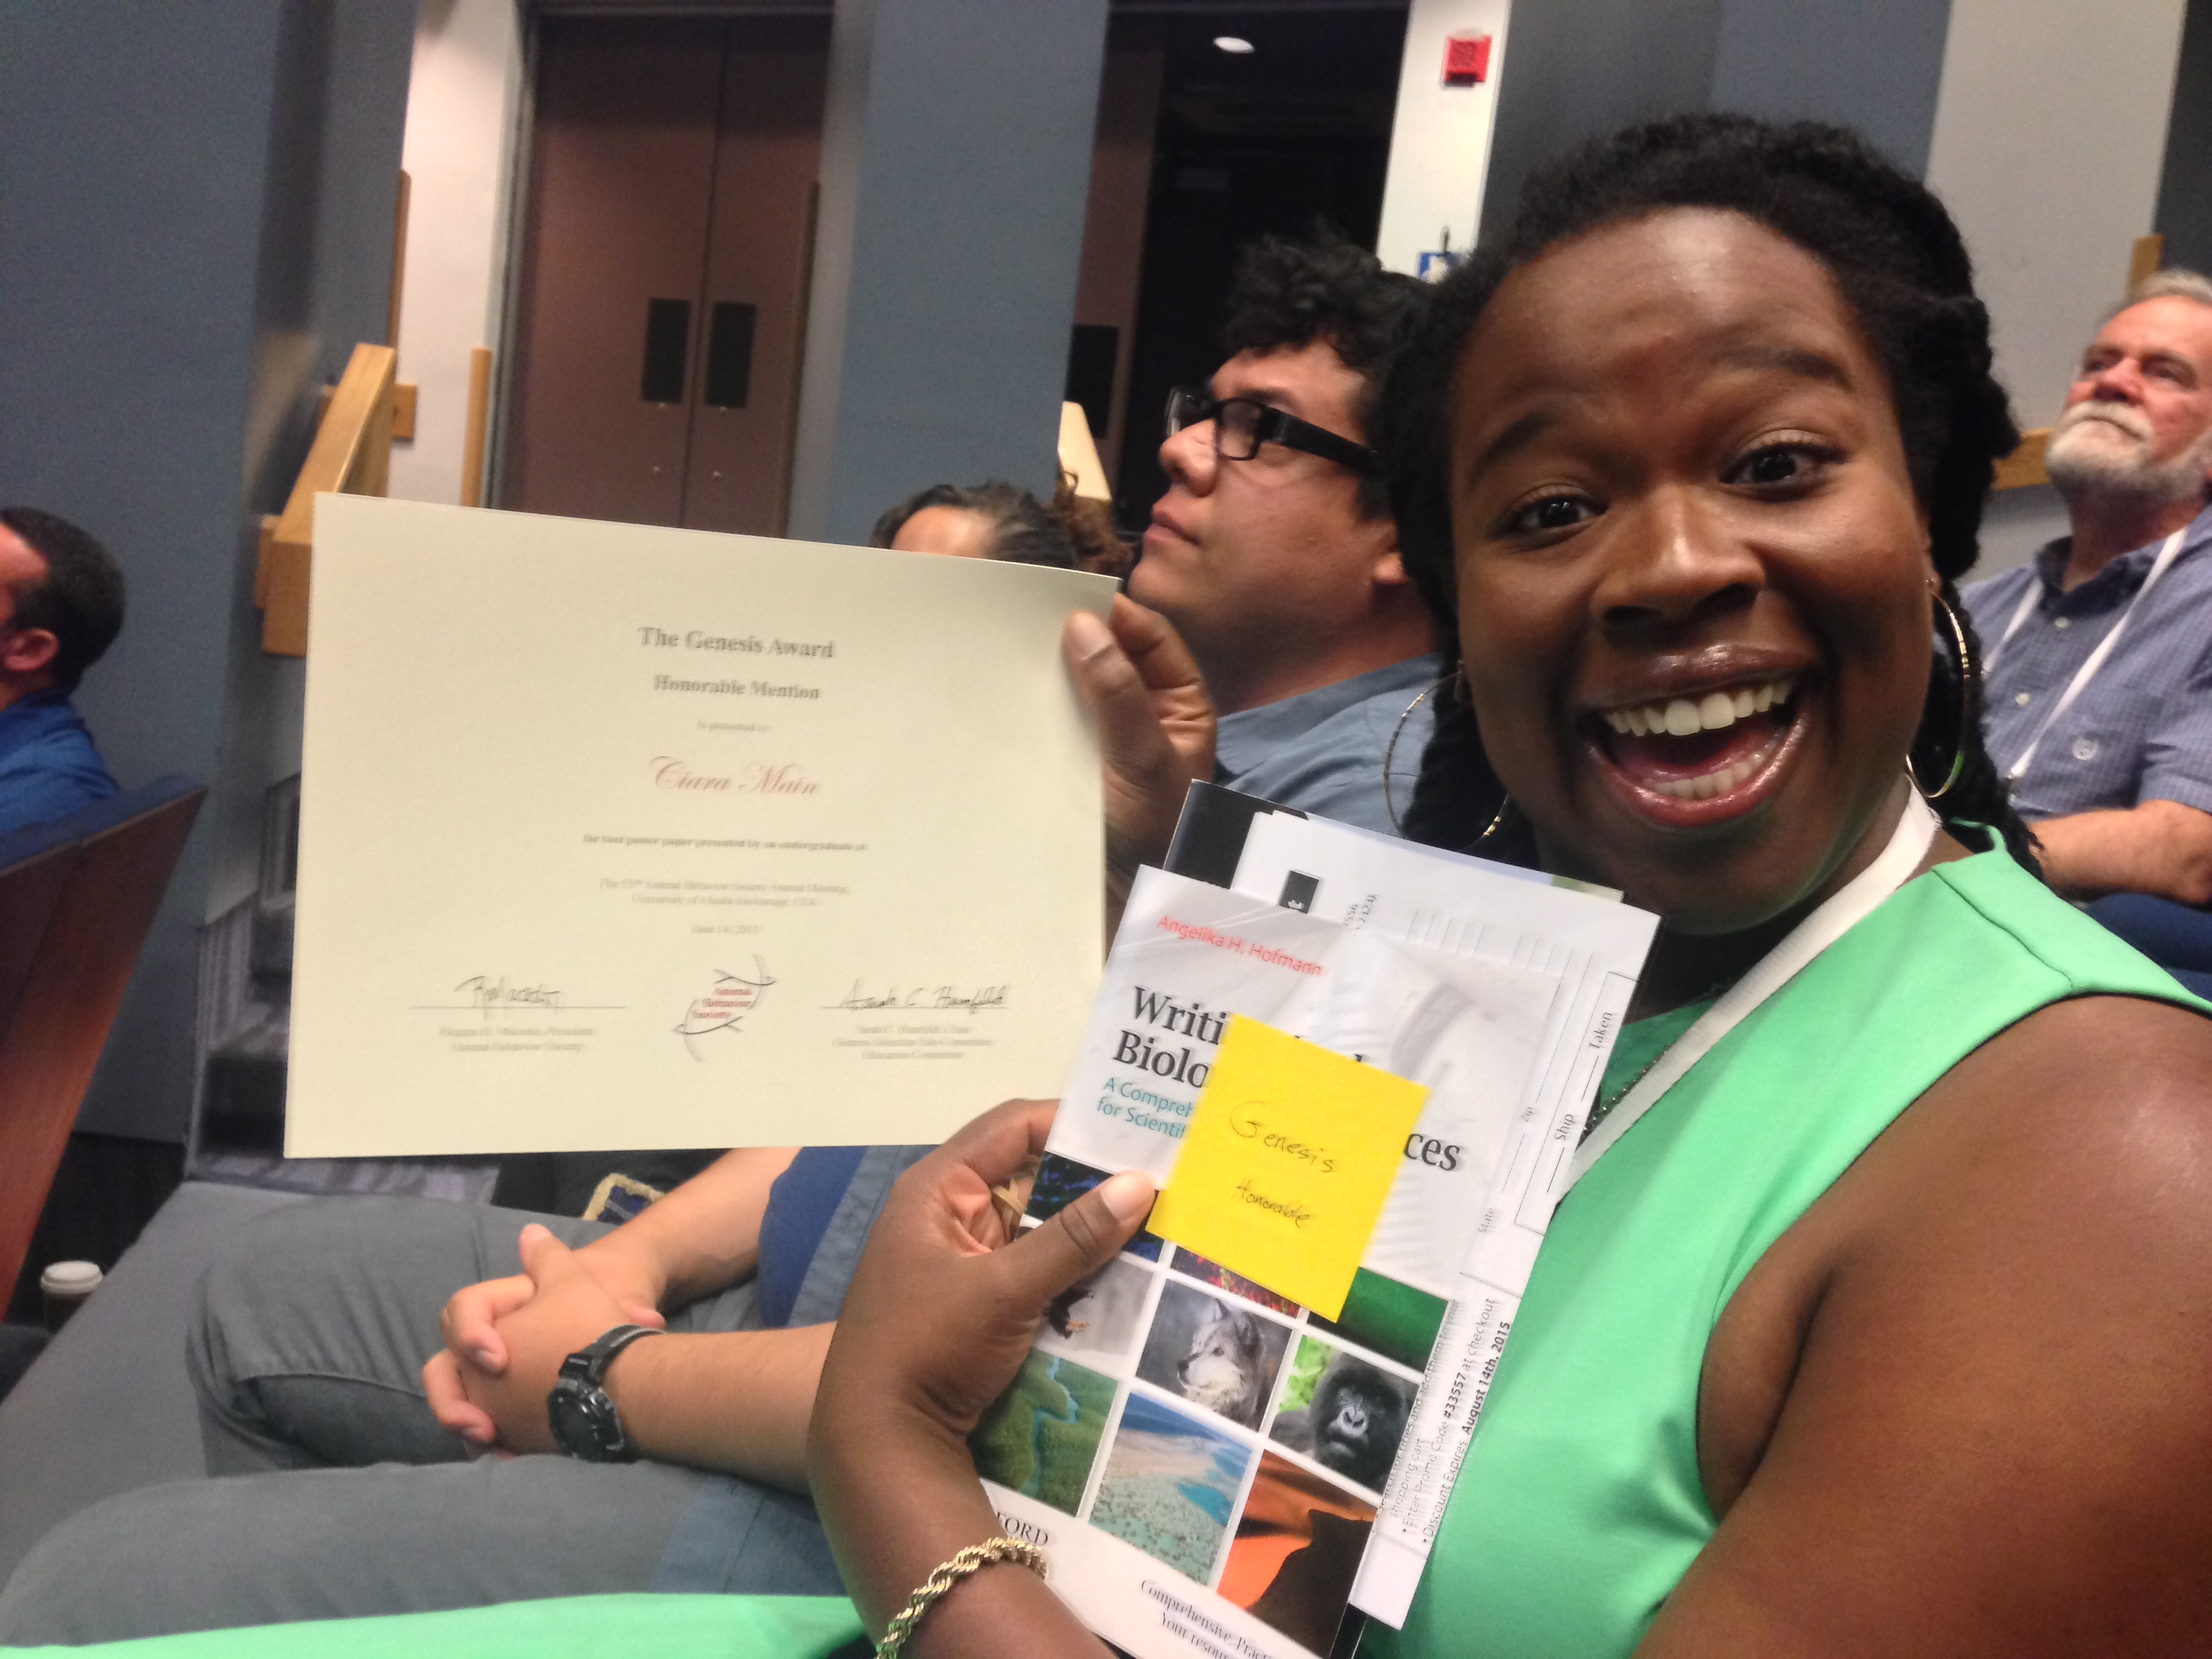 Ciara Main and her honorable mention for the Genesis Award at ABS